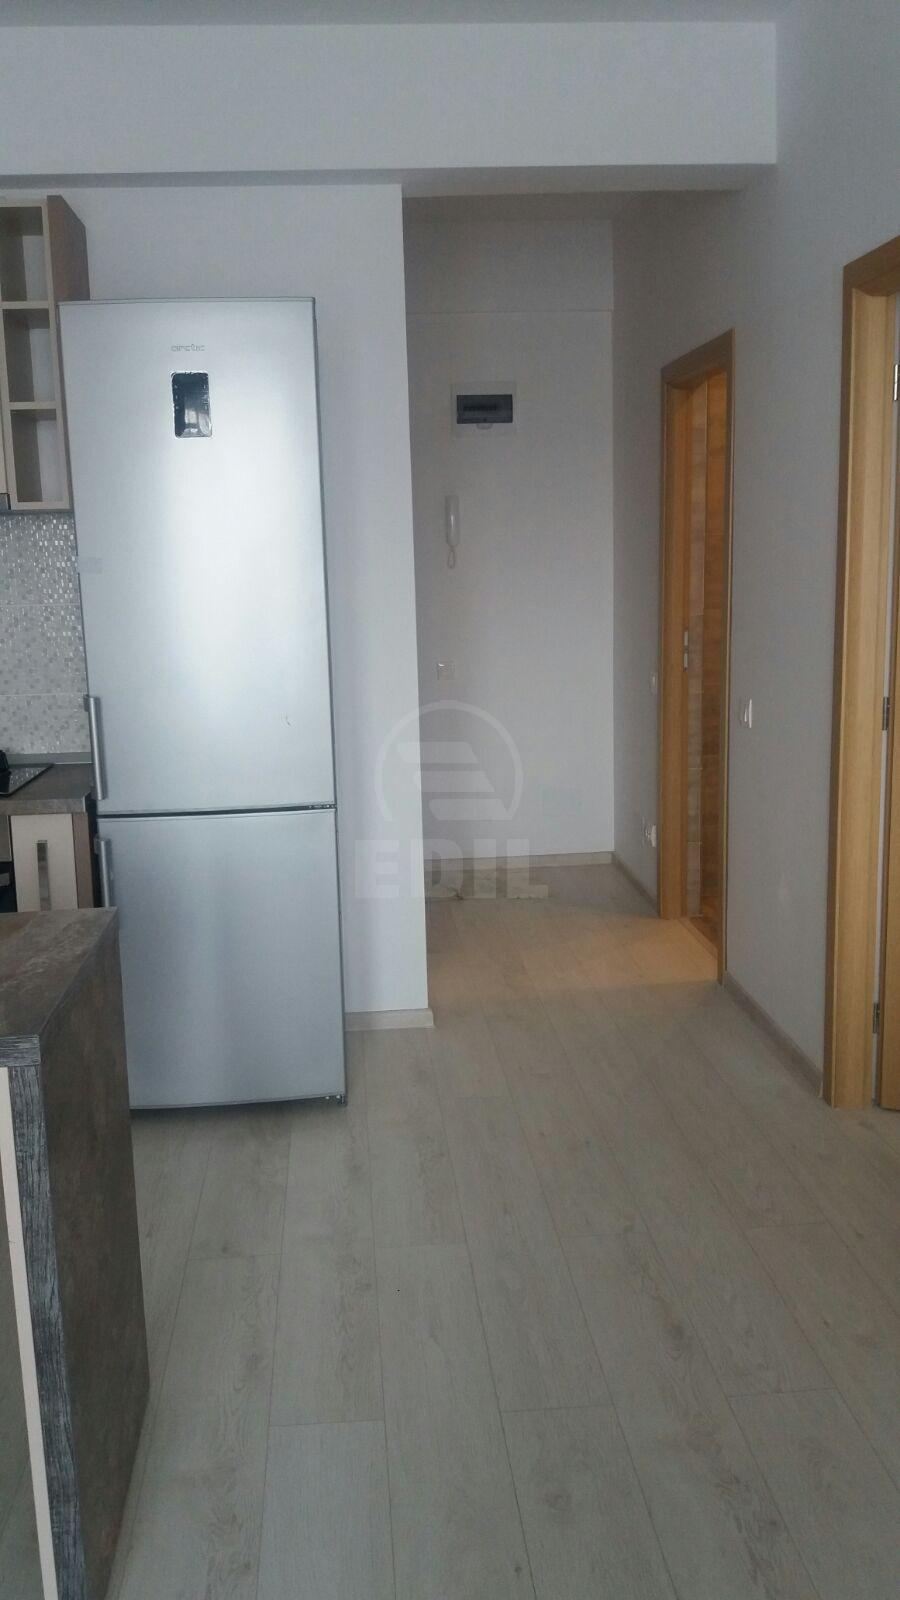 Apartment for rent 2 rooms, APCJ279074-3